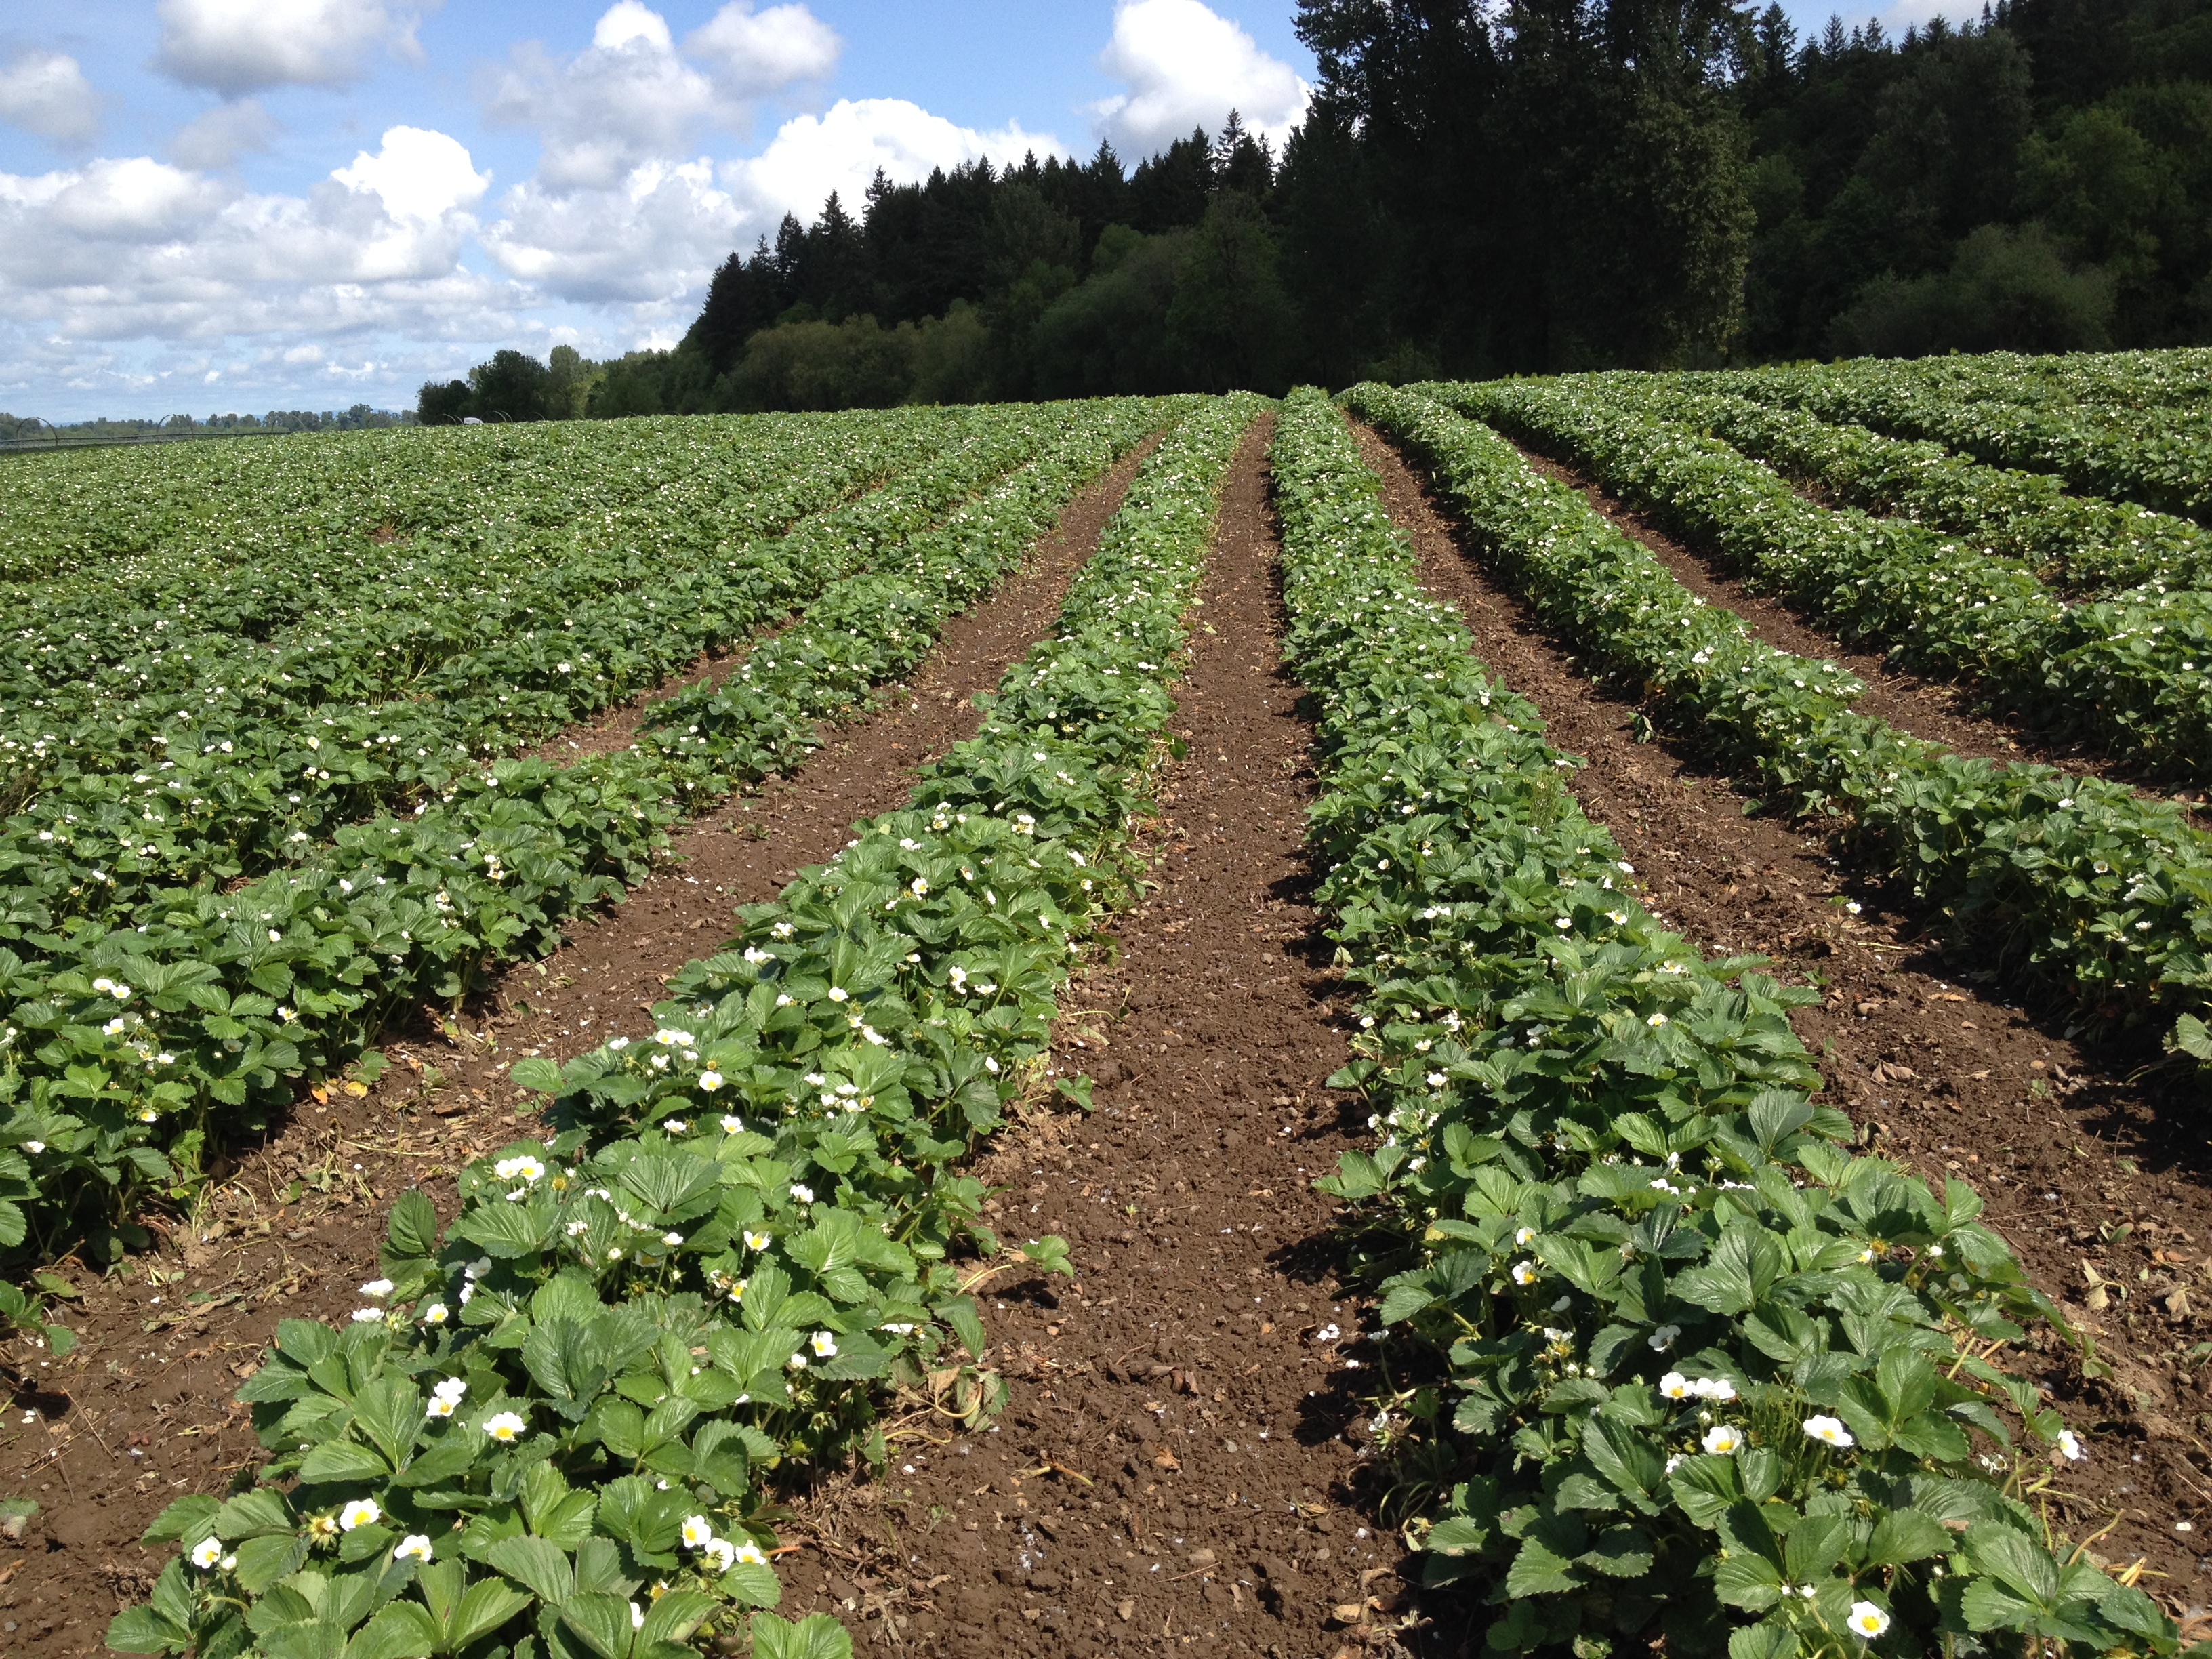 Figure 1. Matted-row field of June-bearing (short-day) strawberries grown on flat ground in Oregon.